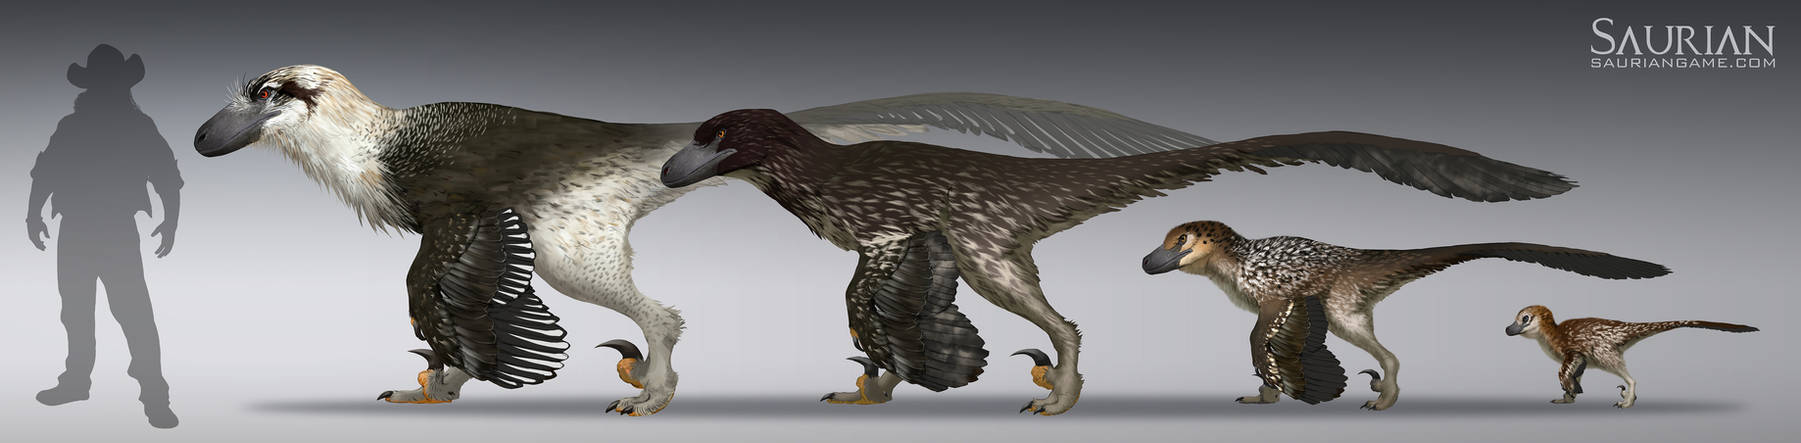 Dakotaraptor Growth Cycle